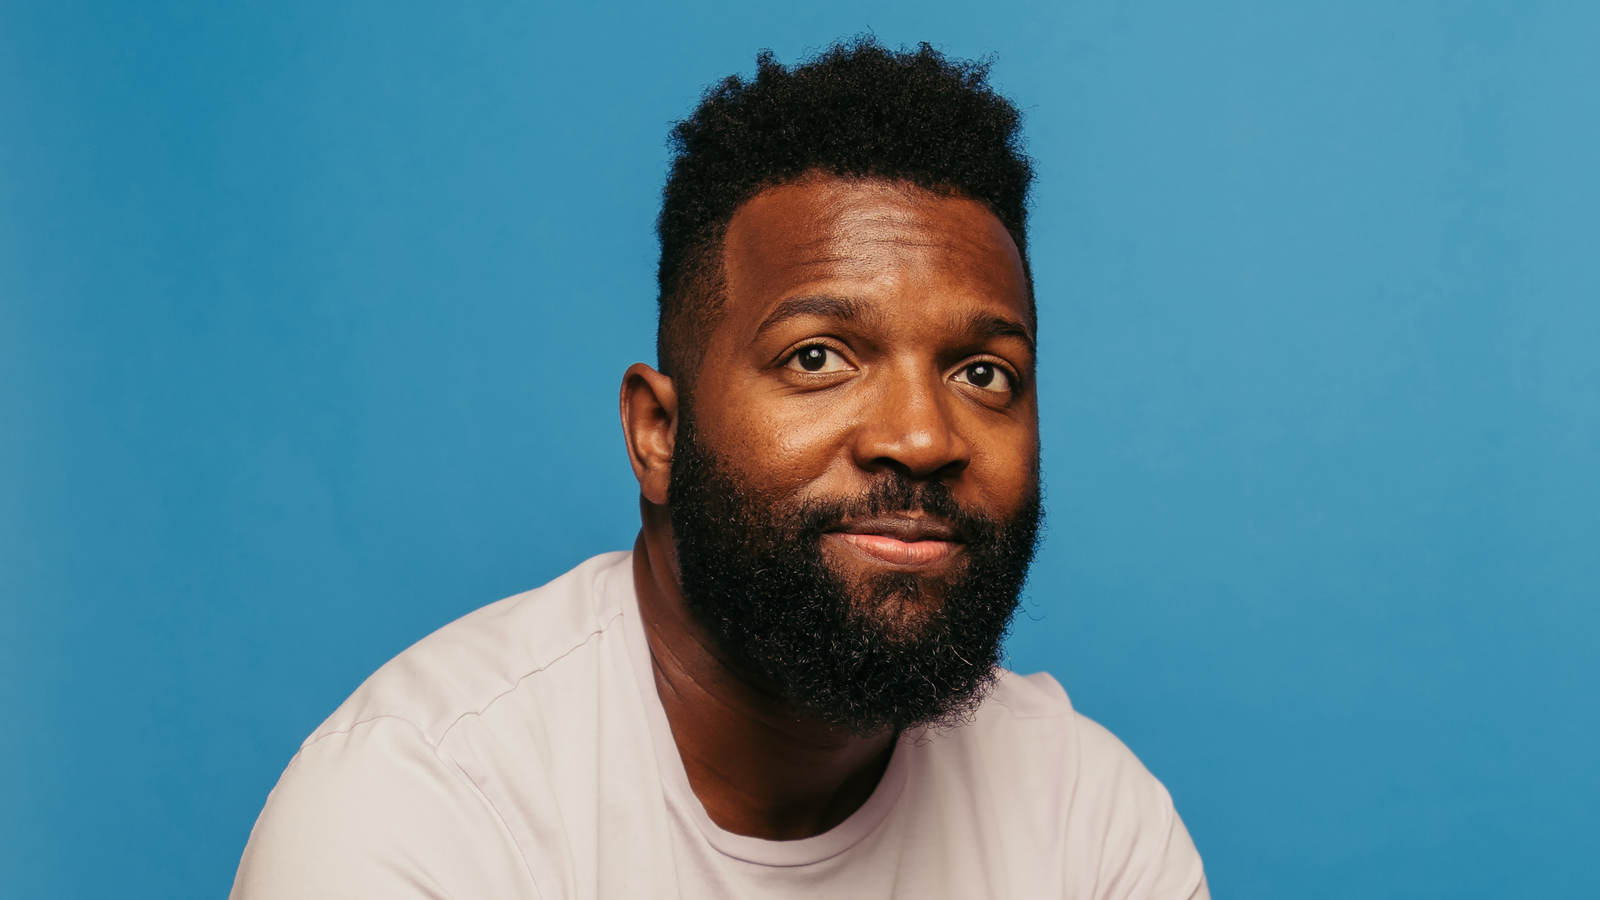 Podcast Mixtape: How to Citizen with Baratunde Thurston